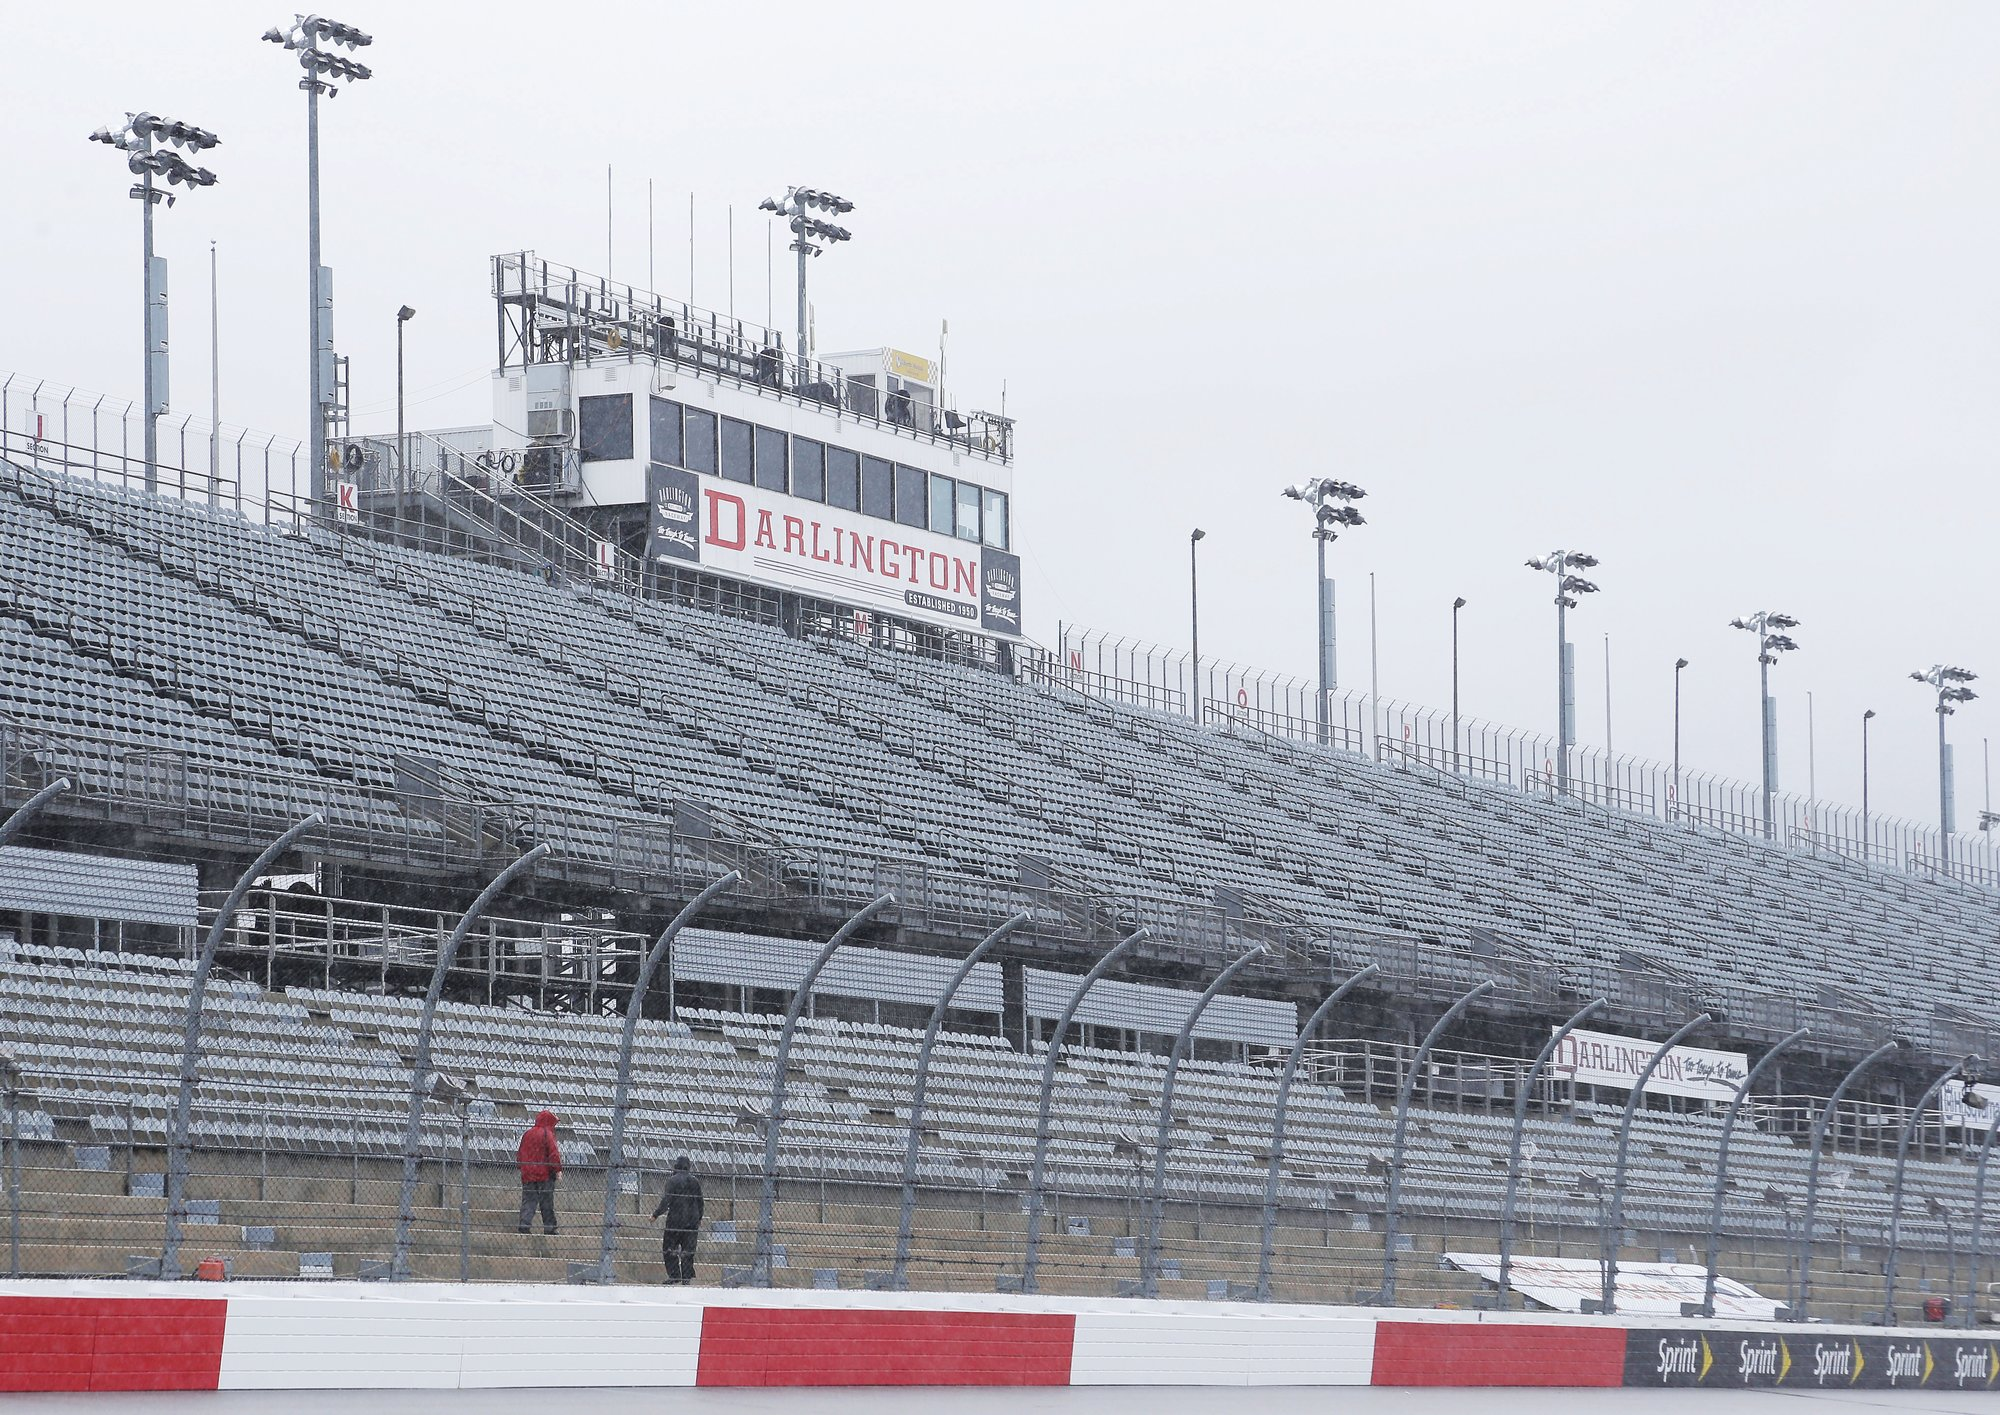 NASCAR says it will resume its season without fans present starting Sunday at Darlington Raceway in South Carolina.